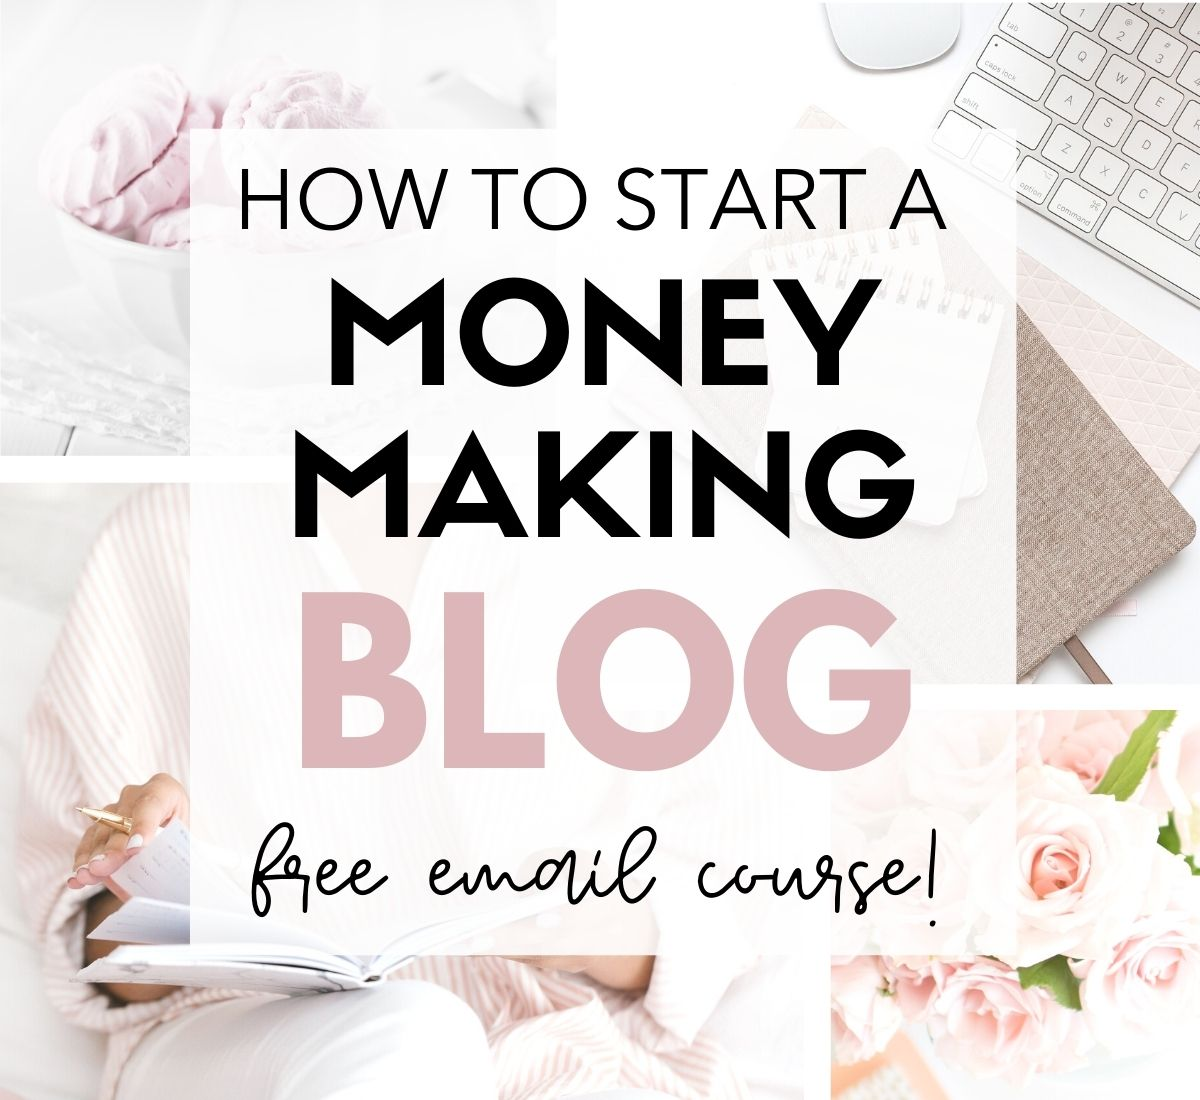 7 day start a money making blog course